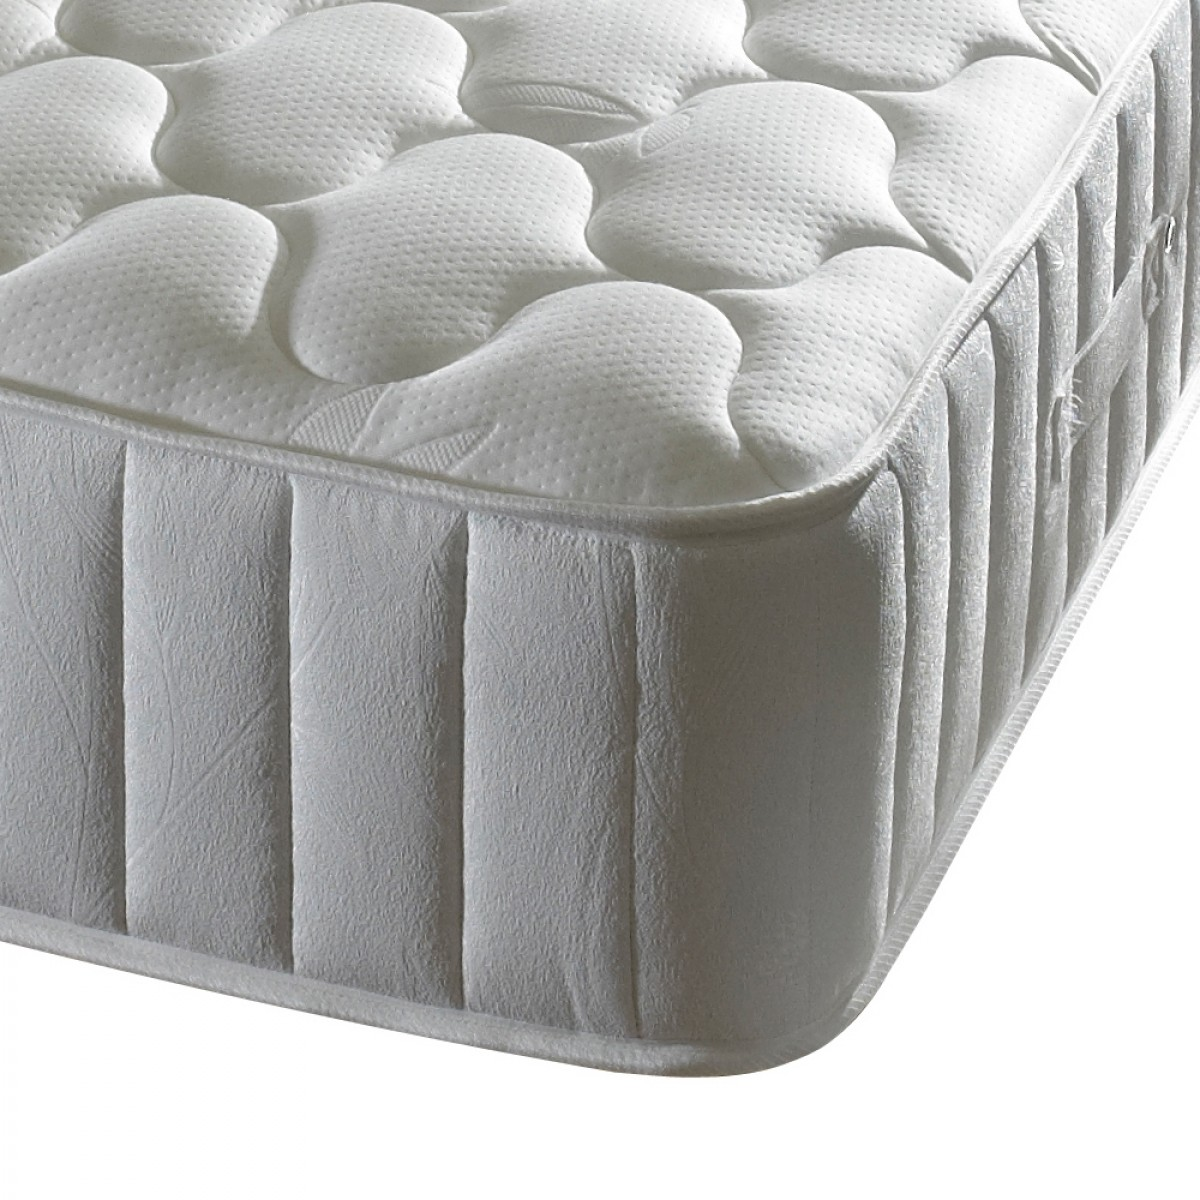 Forest Dream 3000 Pocket Sprung Mattress